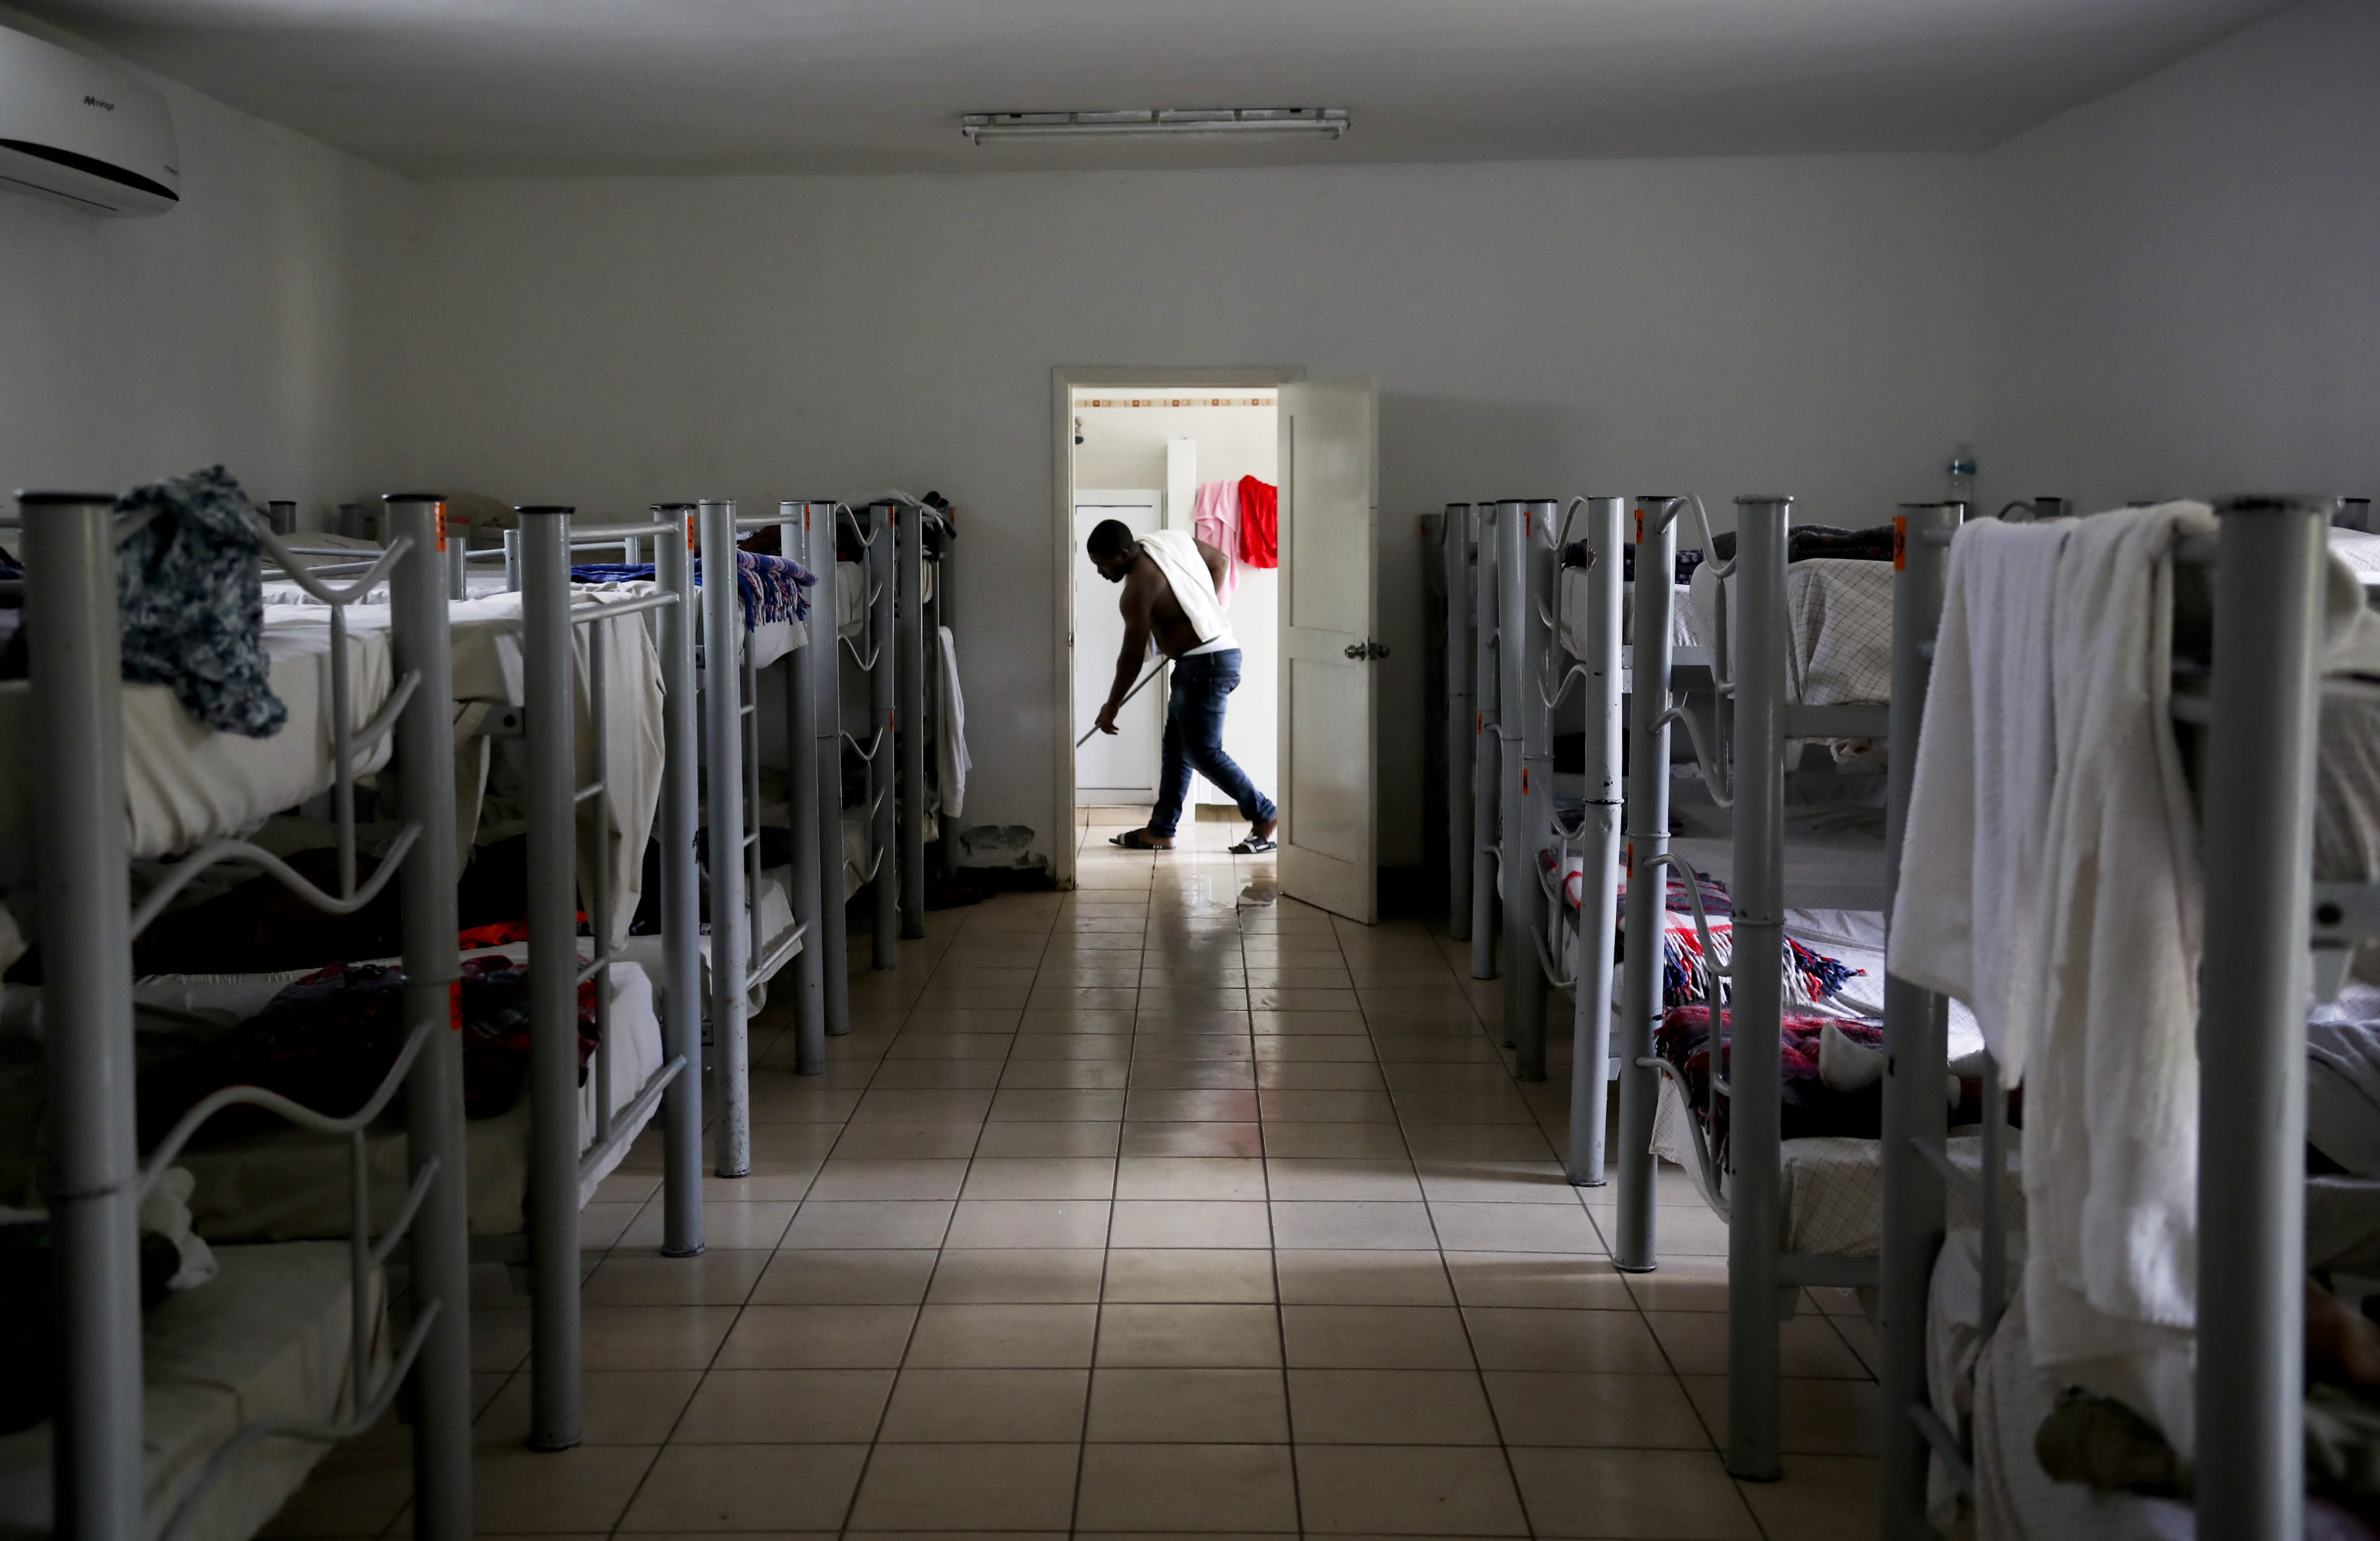 """A migrant from Cameroon cleans the floor of """"La Casa del Migrante"""" shelter for migrants in Matamoros, Mexico, Thursday, Aug. 1, 2019, on the border with Brownsville, Texas. The United States government has sent some 800 mostly Central American and Cuban immigrants back to this northern Mexico border city since expanding its controversial plan to this easternmost point on the shared border two weeks ago, according to local Mexican authorities. (AP Photo/Emilio Espejel)"""